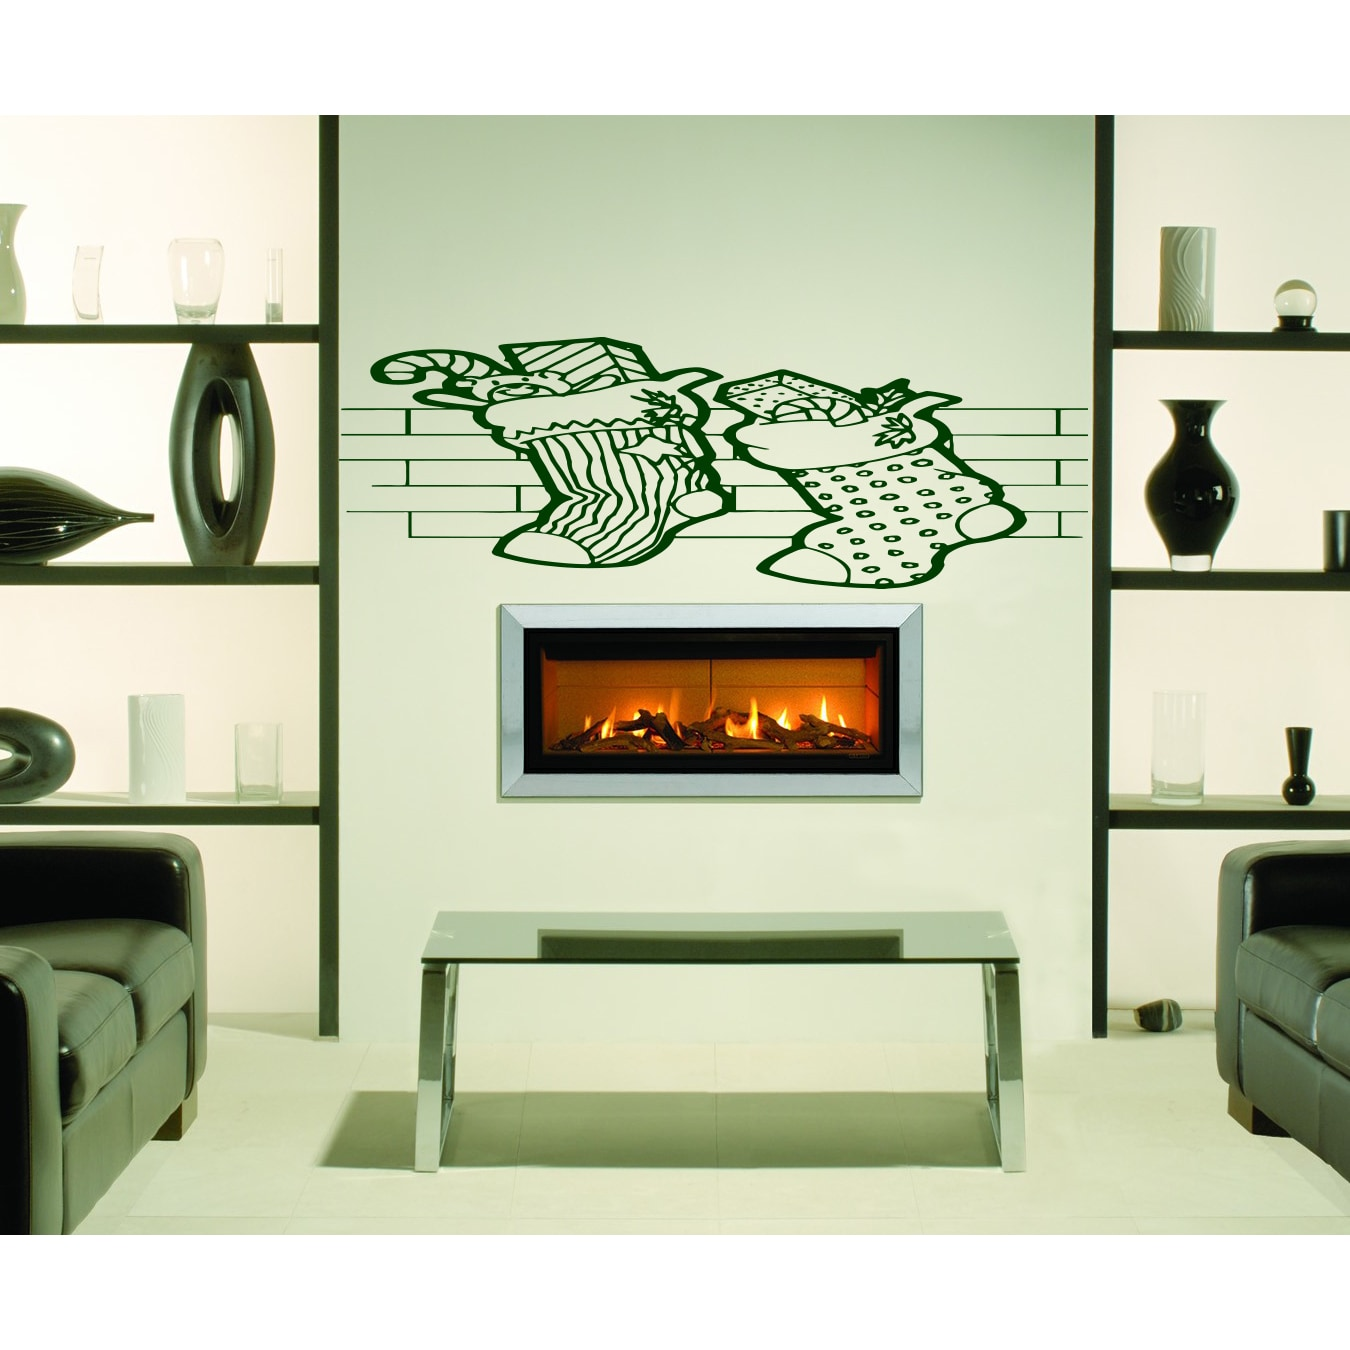 Shop Christmas Socks By The Fireplace Wall Art Sticker Decal Red